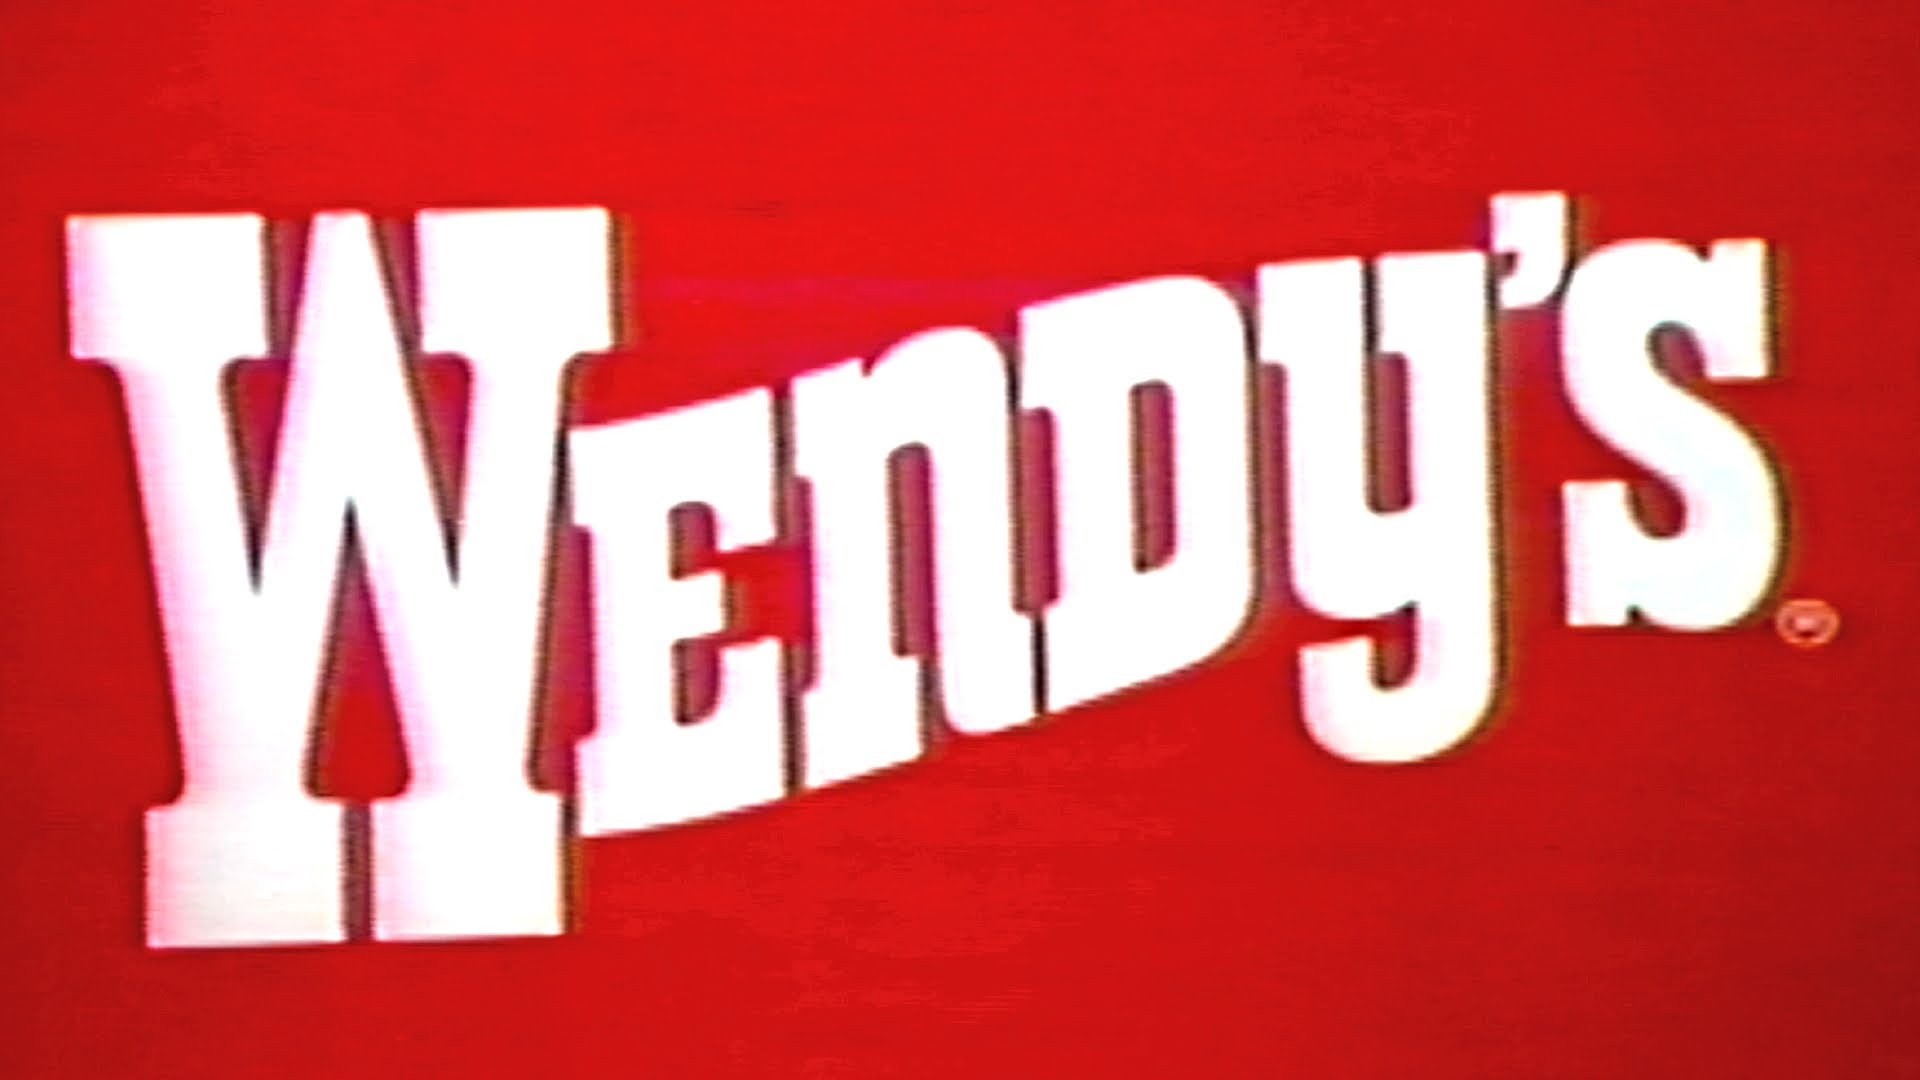 Wendy's Wallpapers